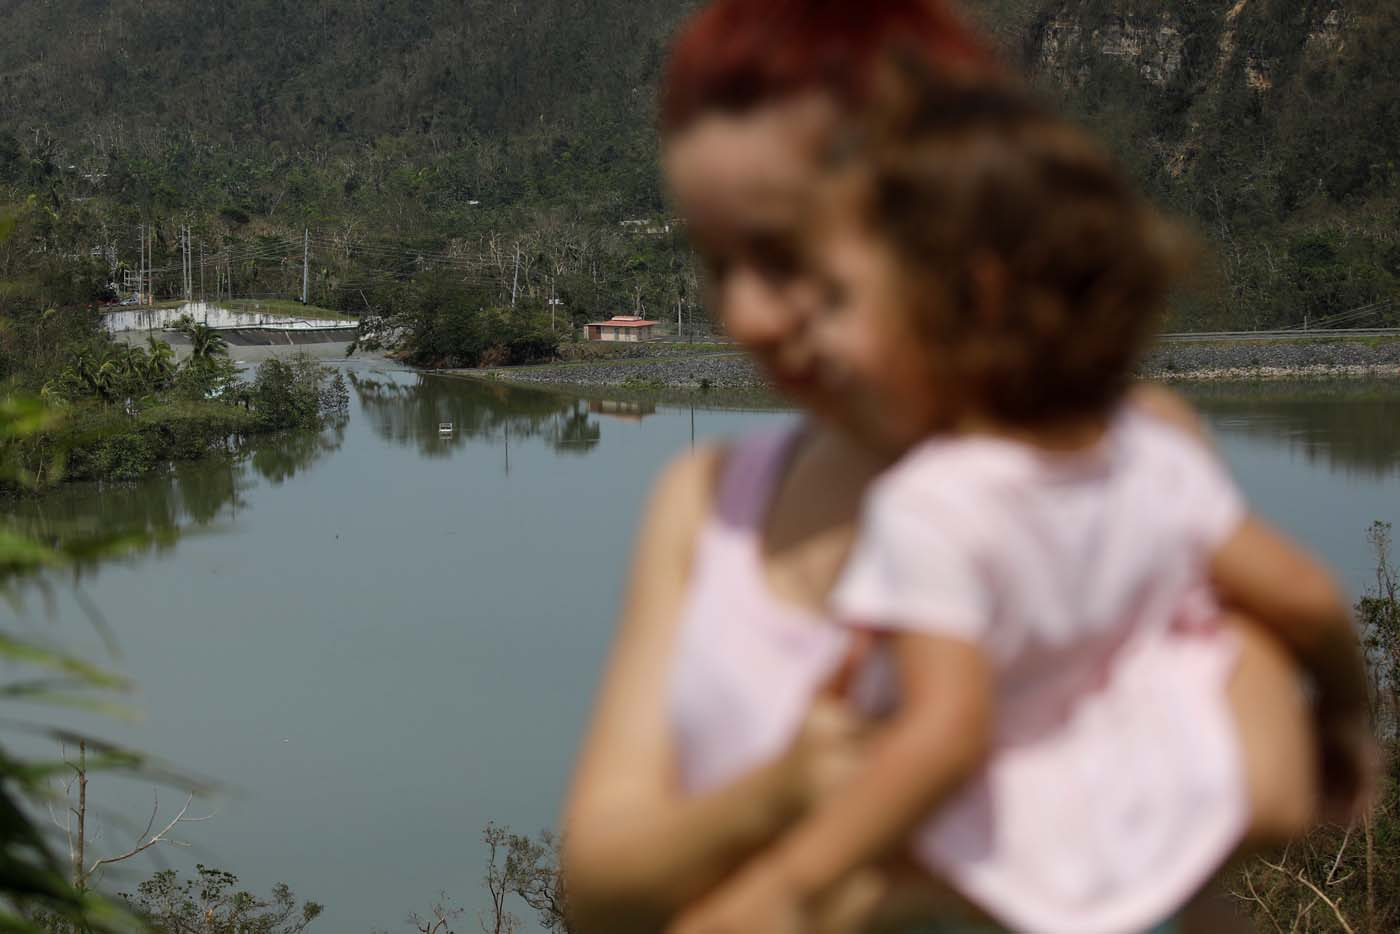 Yadira Nieves carries her daughter as they look at water flowing over the road at the dam of the Guajataca lake after the area was hit by Hurricane Maria in Guajataca, Puerto Rico September 23, 2017. REUTERS/Carlos Garcia Rawlins